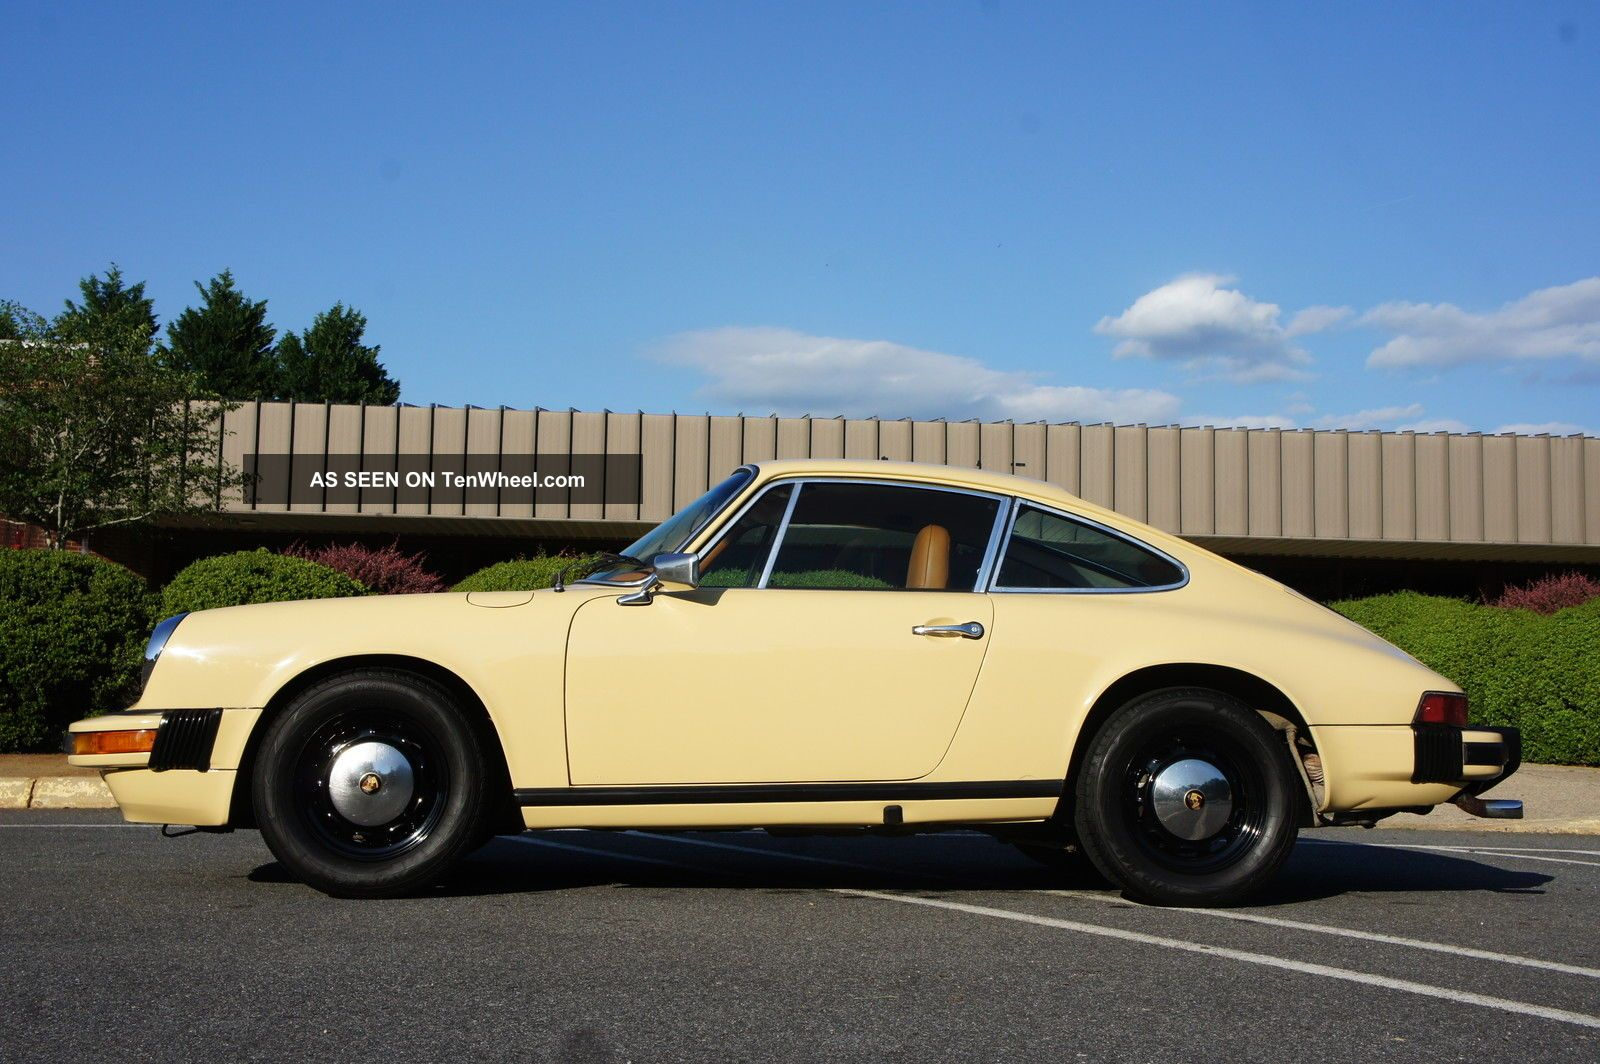 1976 Porsche 912e In Excellent Cond 1 Of 2092 Made; 1 Of 10 In Talbot Yellow 912 photo